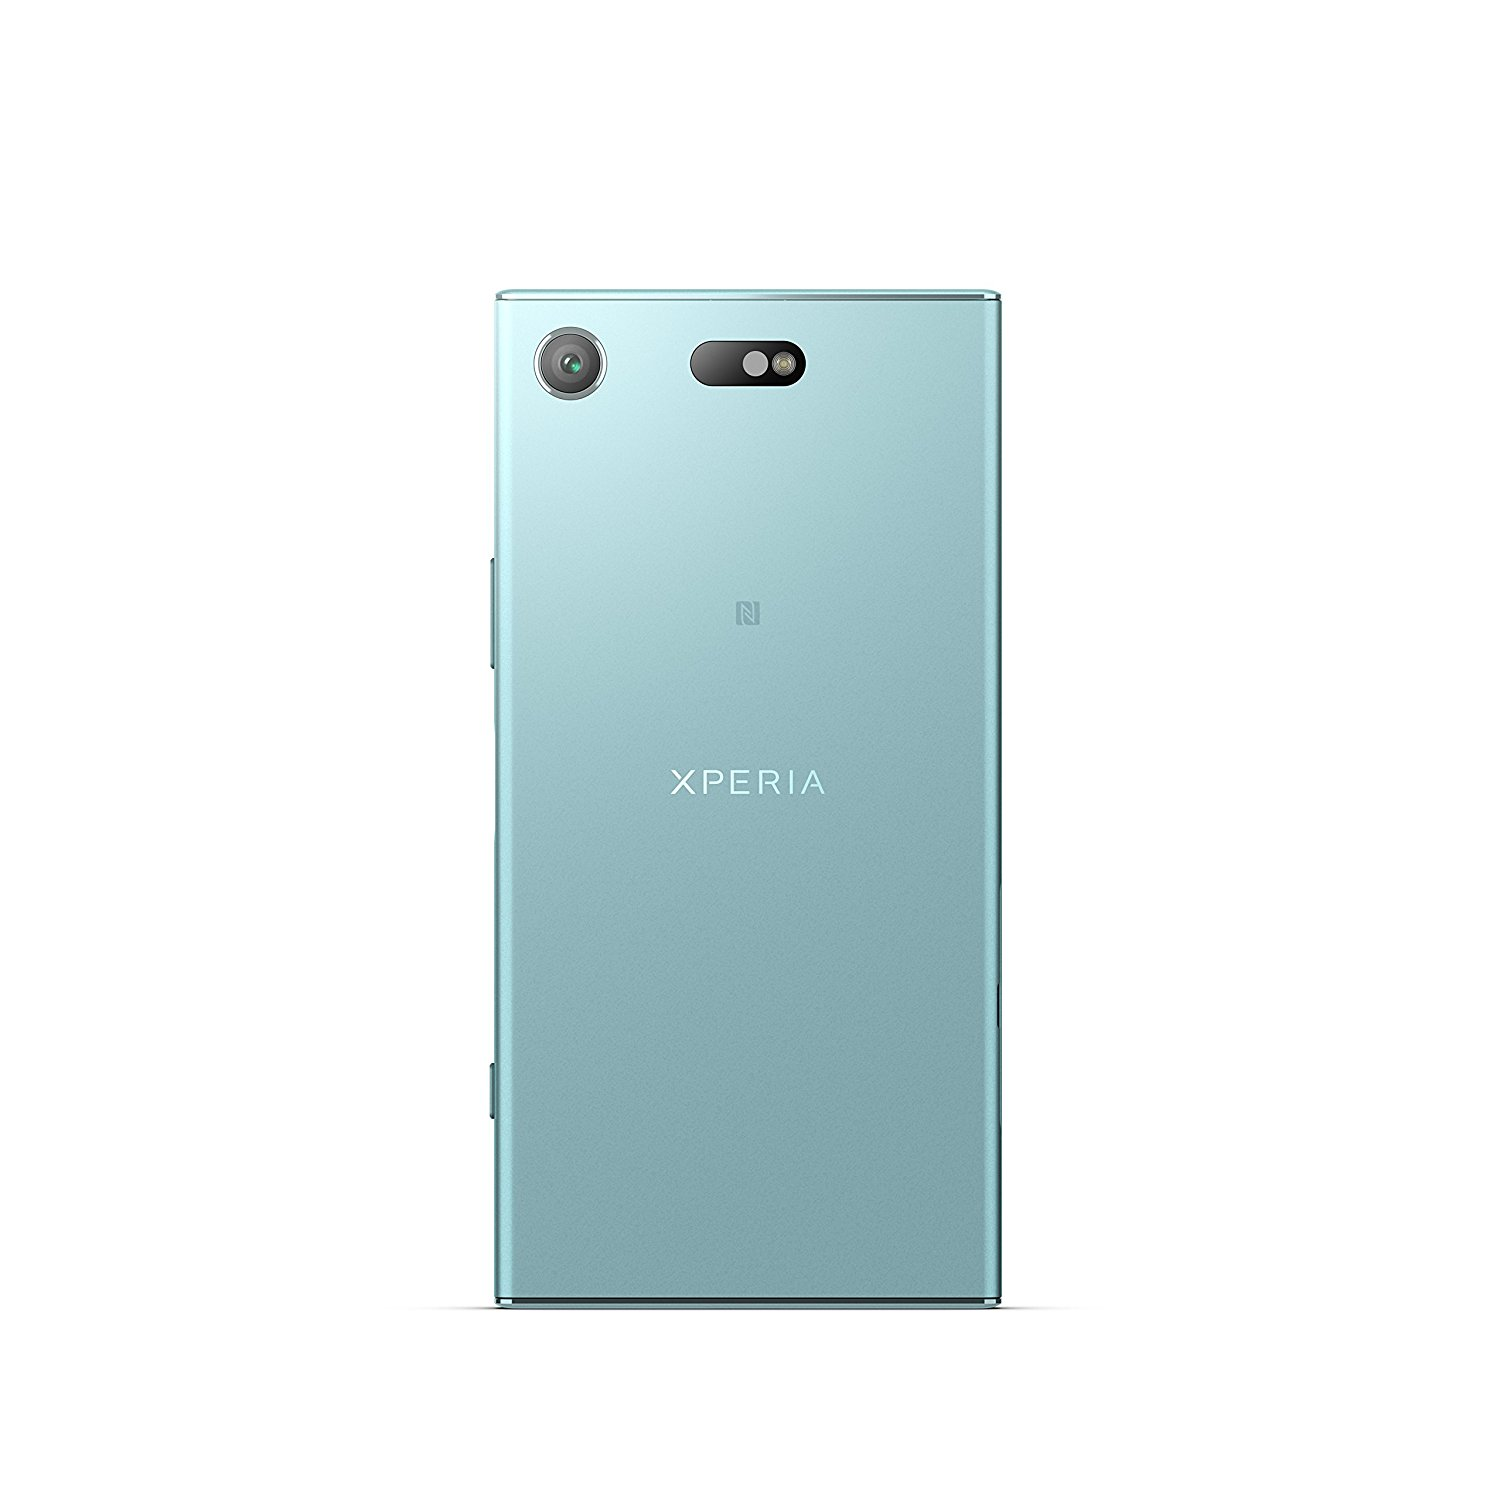 sony xperia xz1 compact g8441 factory unlocked 4 6 hd black blue pink silver ebay. Black Bedroom Furniture Sets. Home Design Ideas